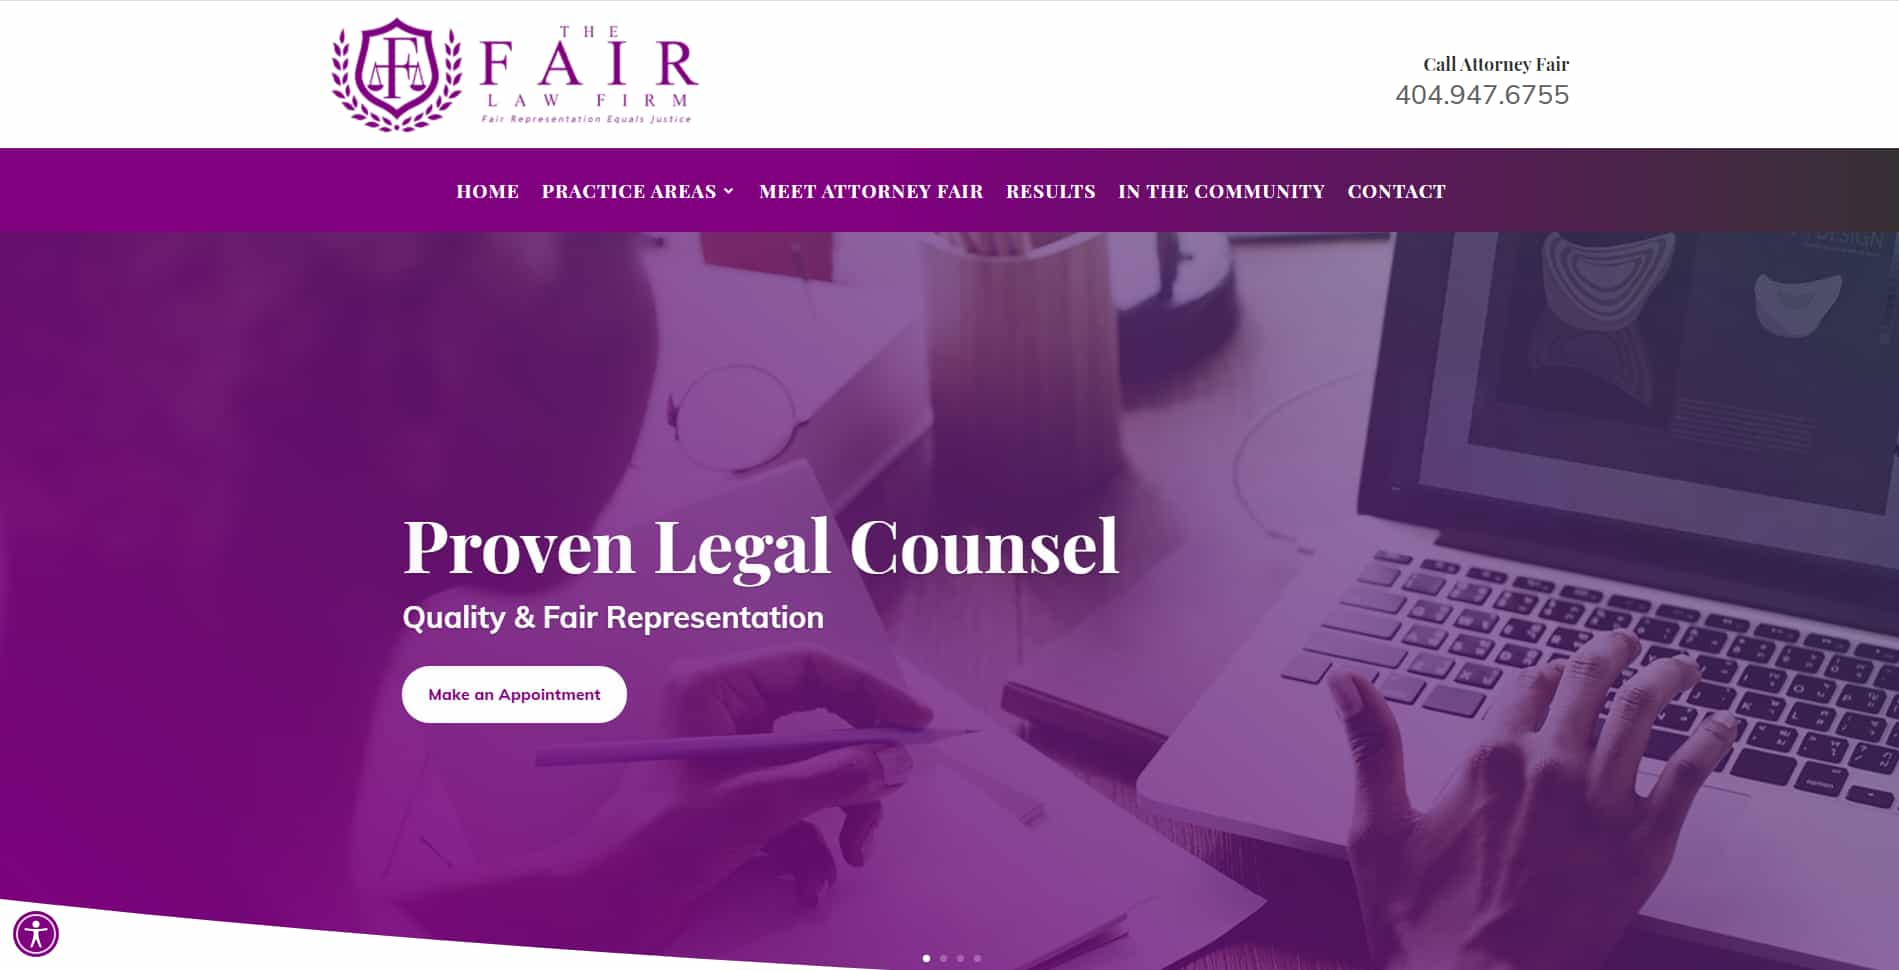 An image of the Fair Law Firm website built by Not Fade Away.